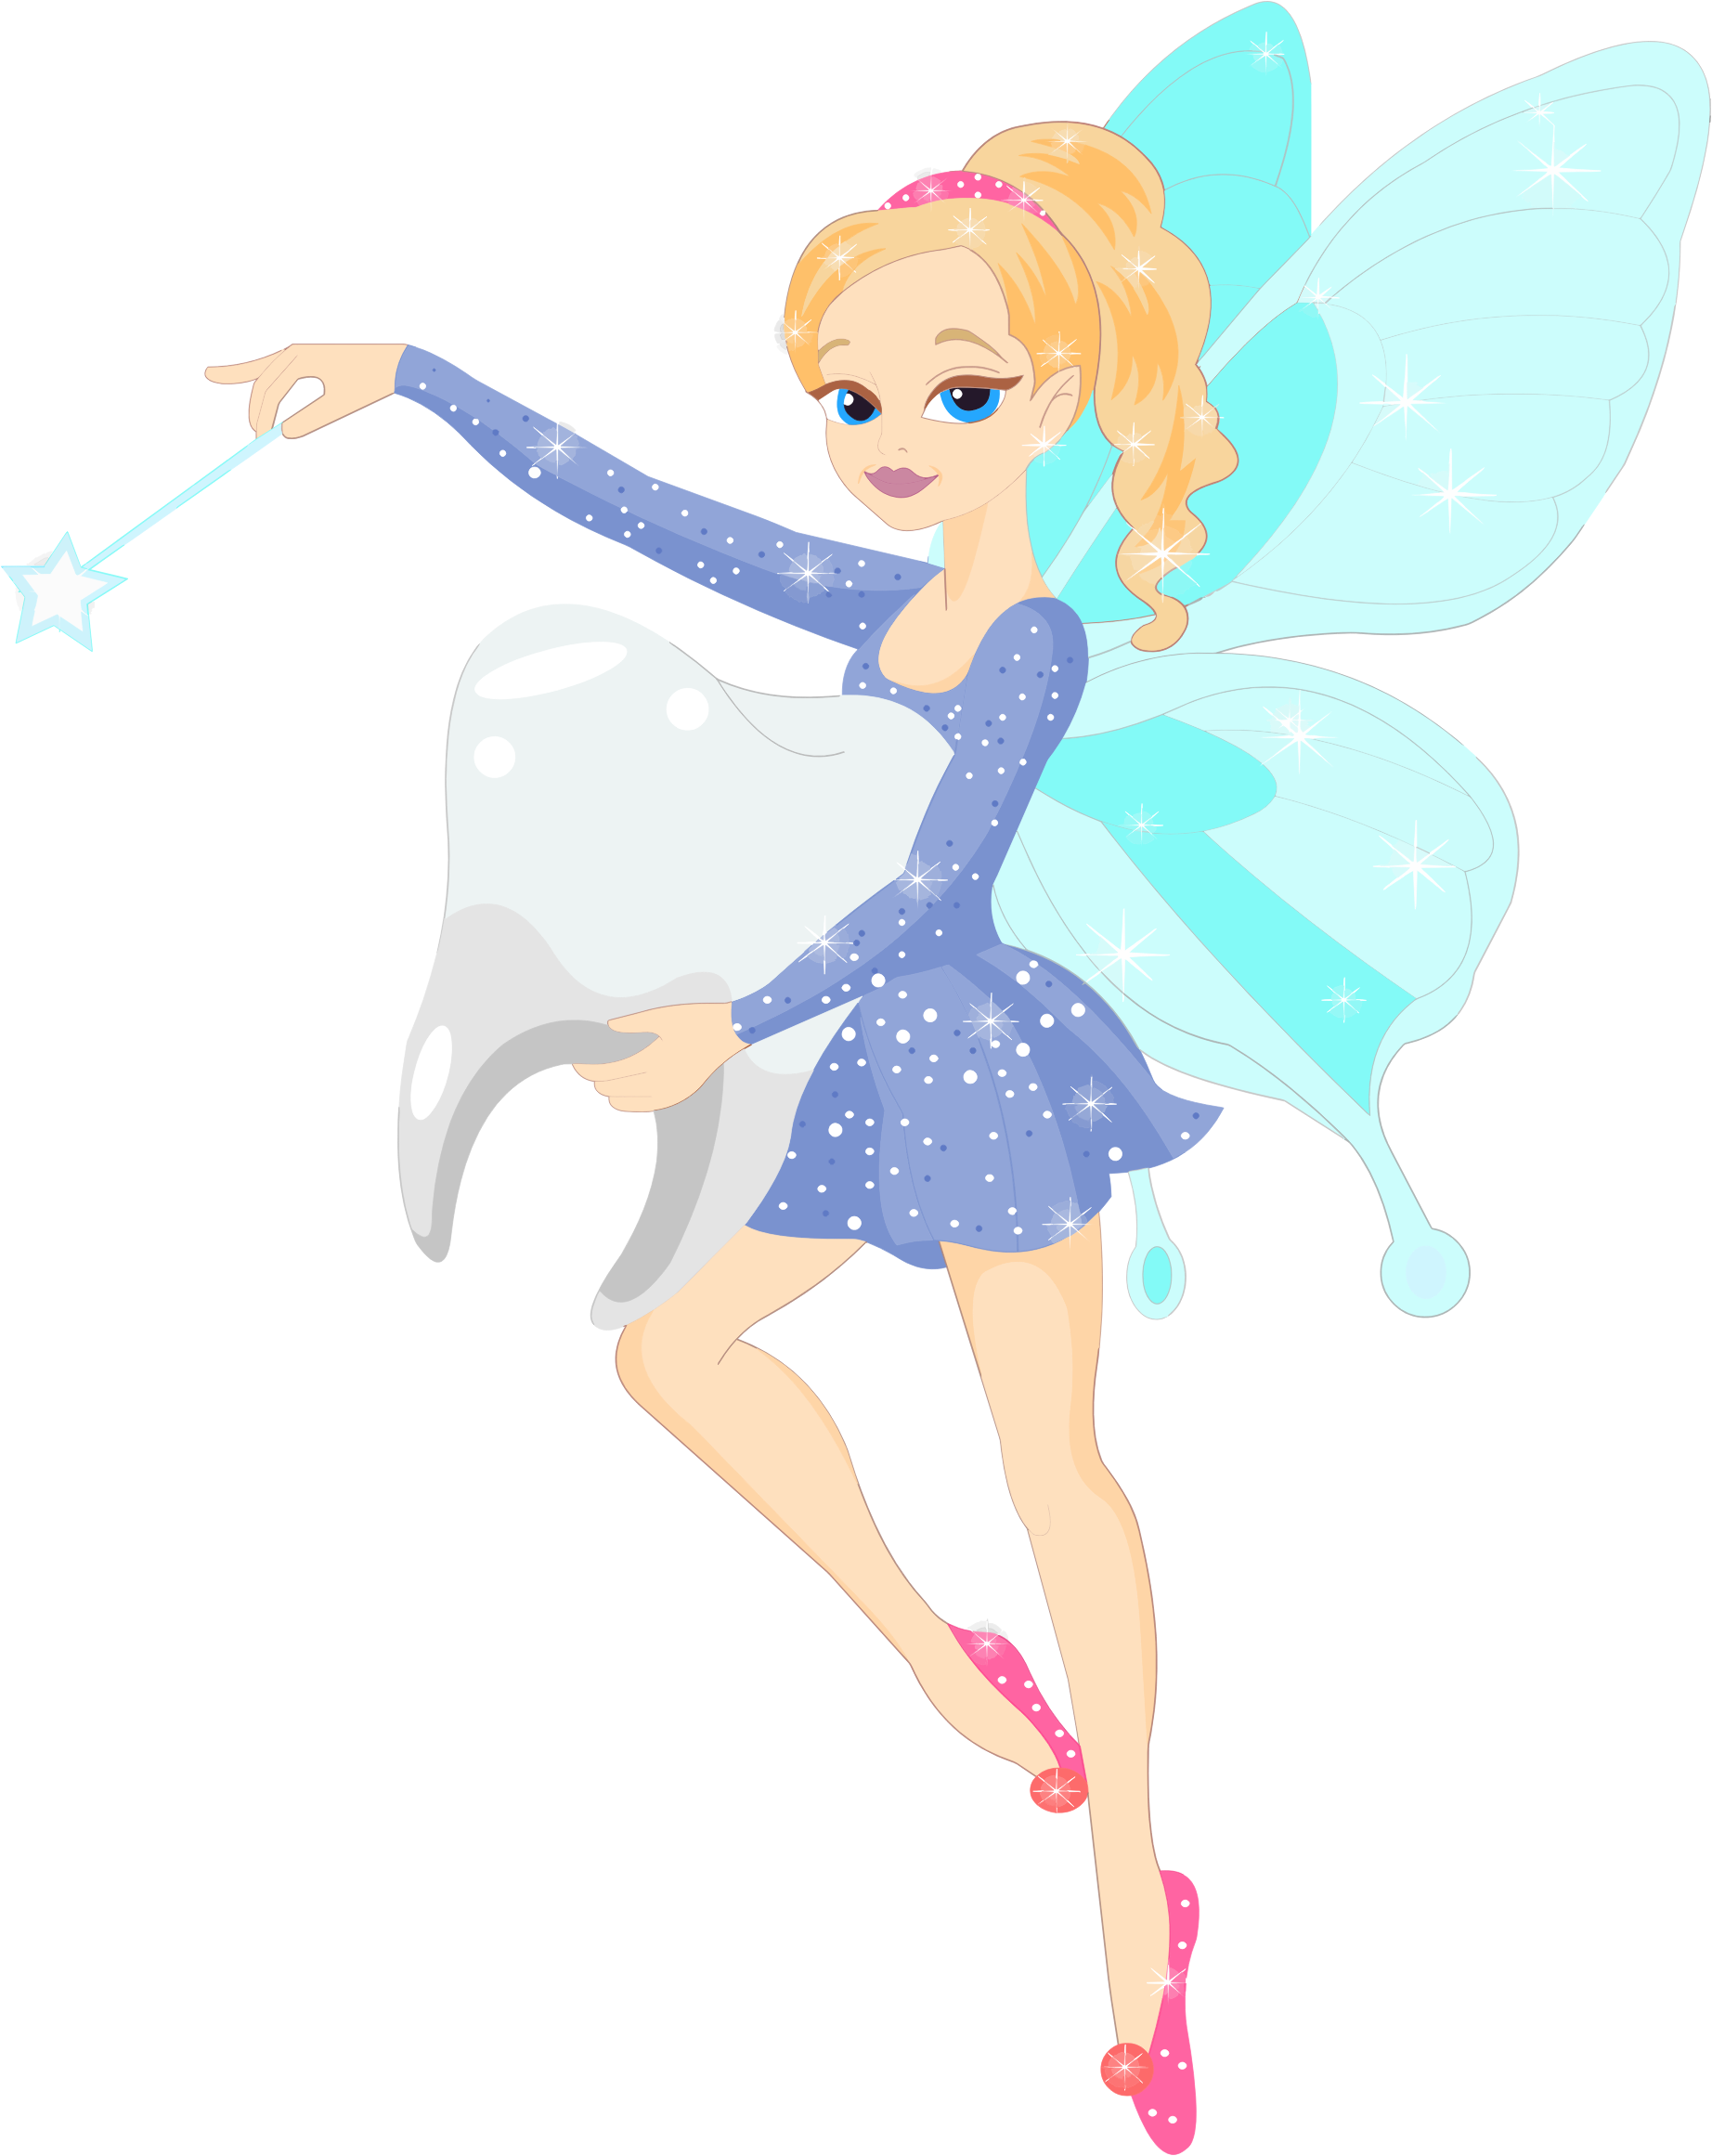 Big image png. Fairy clipart tooth fairy